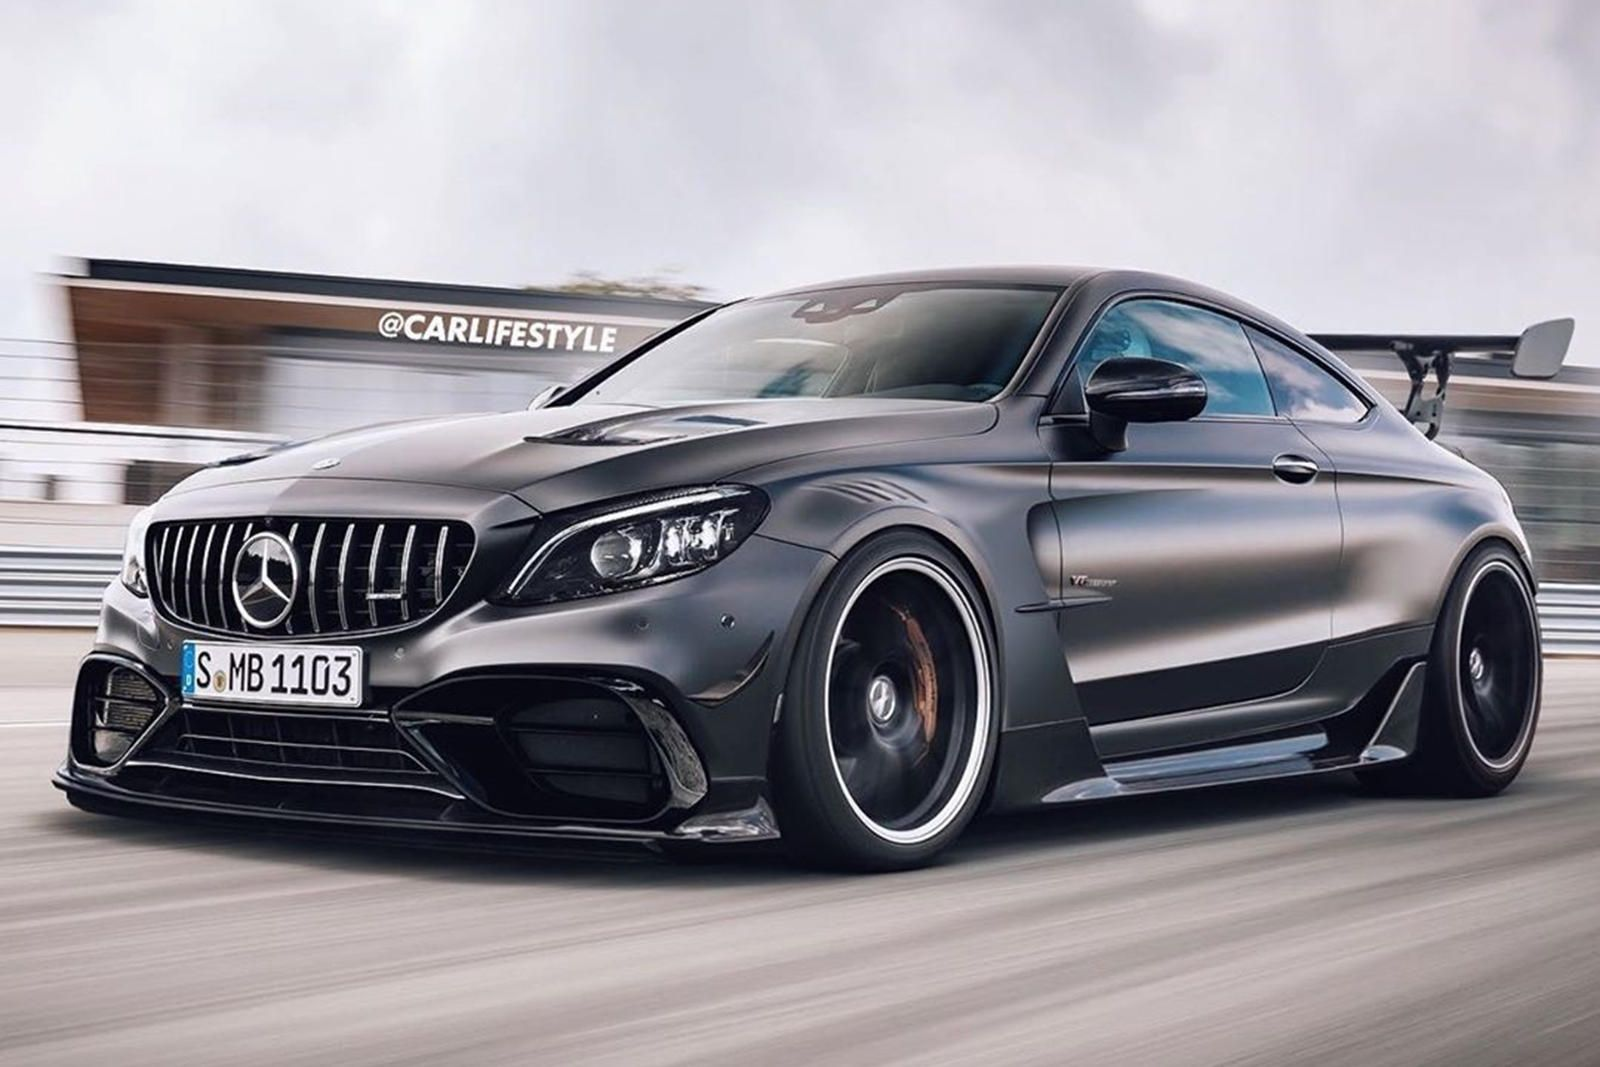 Mercedes Amg Is Synonymous With High Horsepower And Thanks To The New Amg Gt Black Series That Reputation Mercedes Amg New Mercedes Amg Mercedes Benz C63 Amg